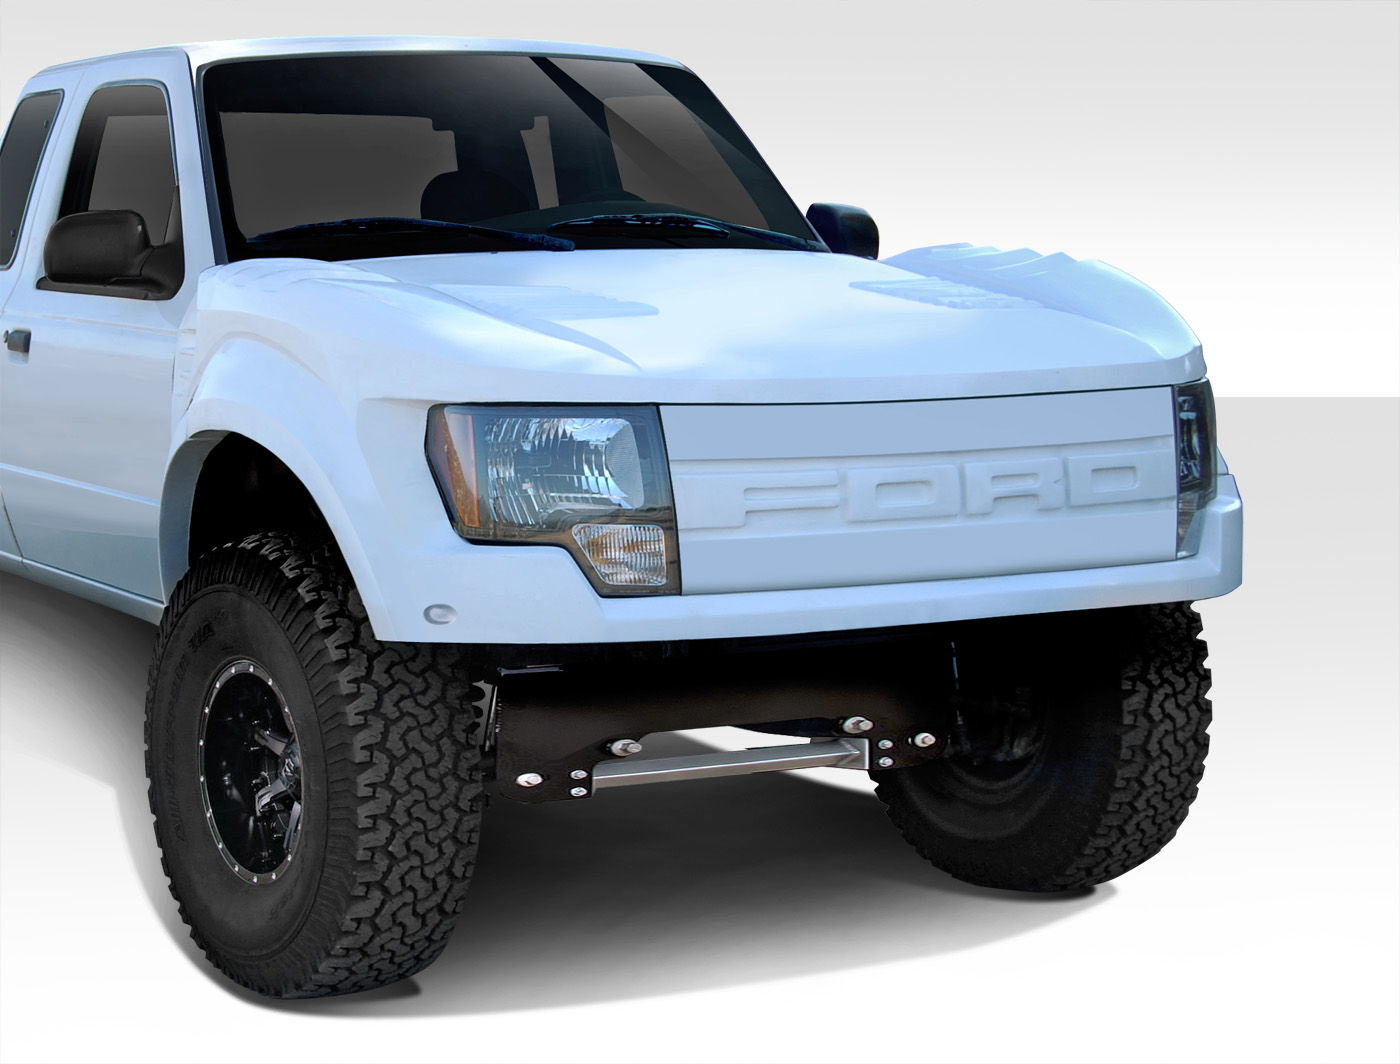 Ford Ranger To Raptor Conversion Kit >> New Duraflex Part - 93-11 Ford Ranger Off Road Raptor Front End Conversion Now Available - Ford ...